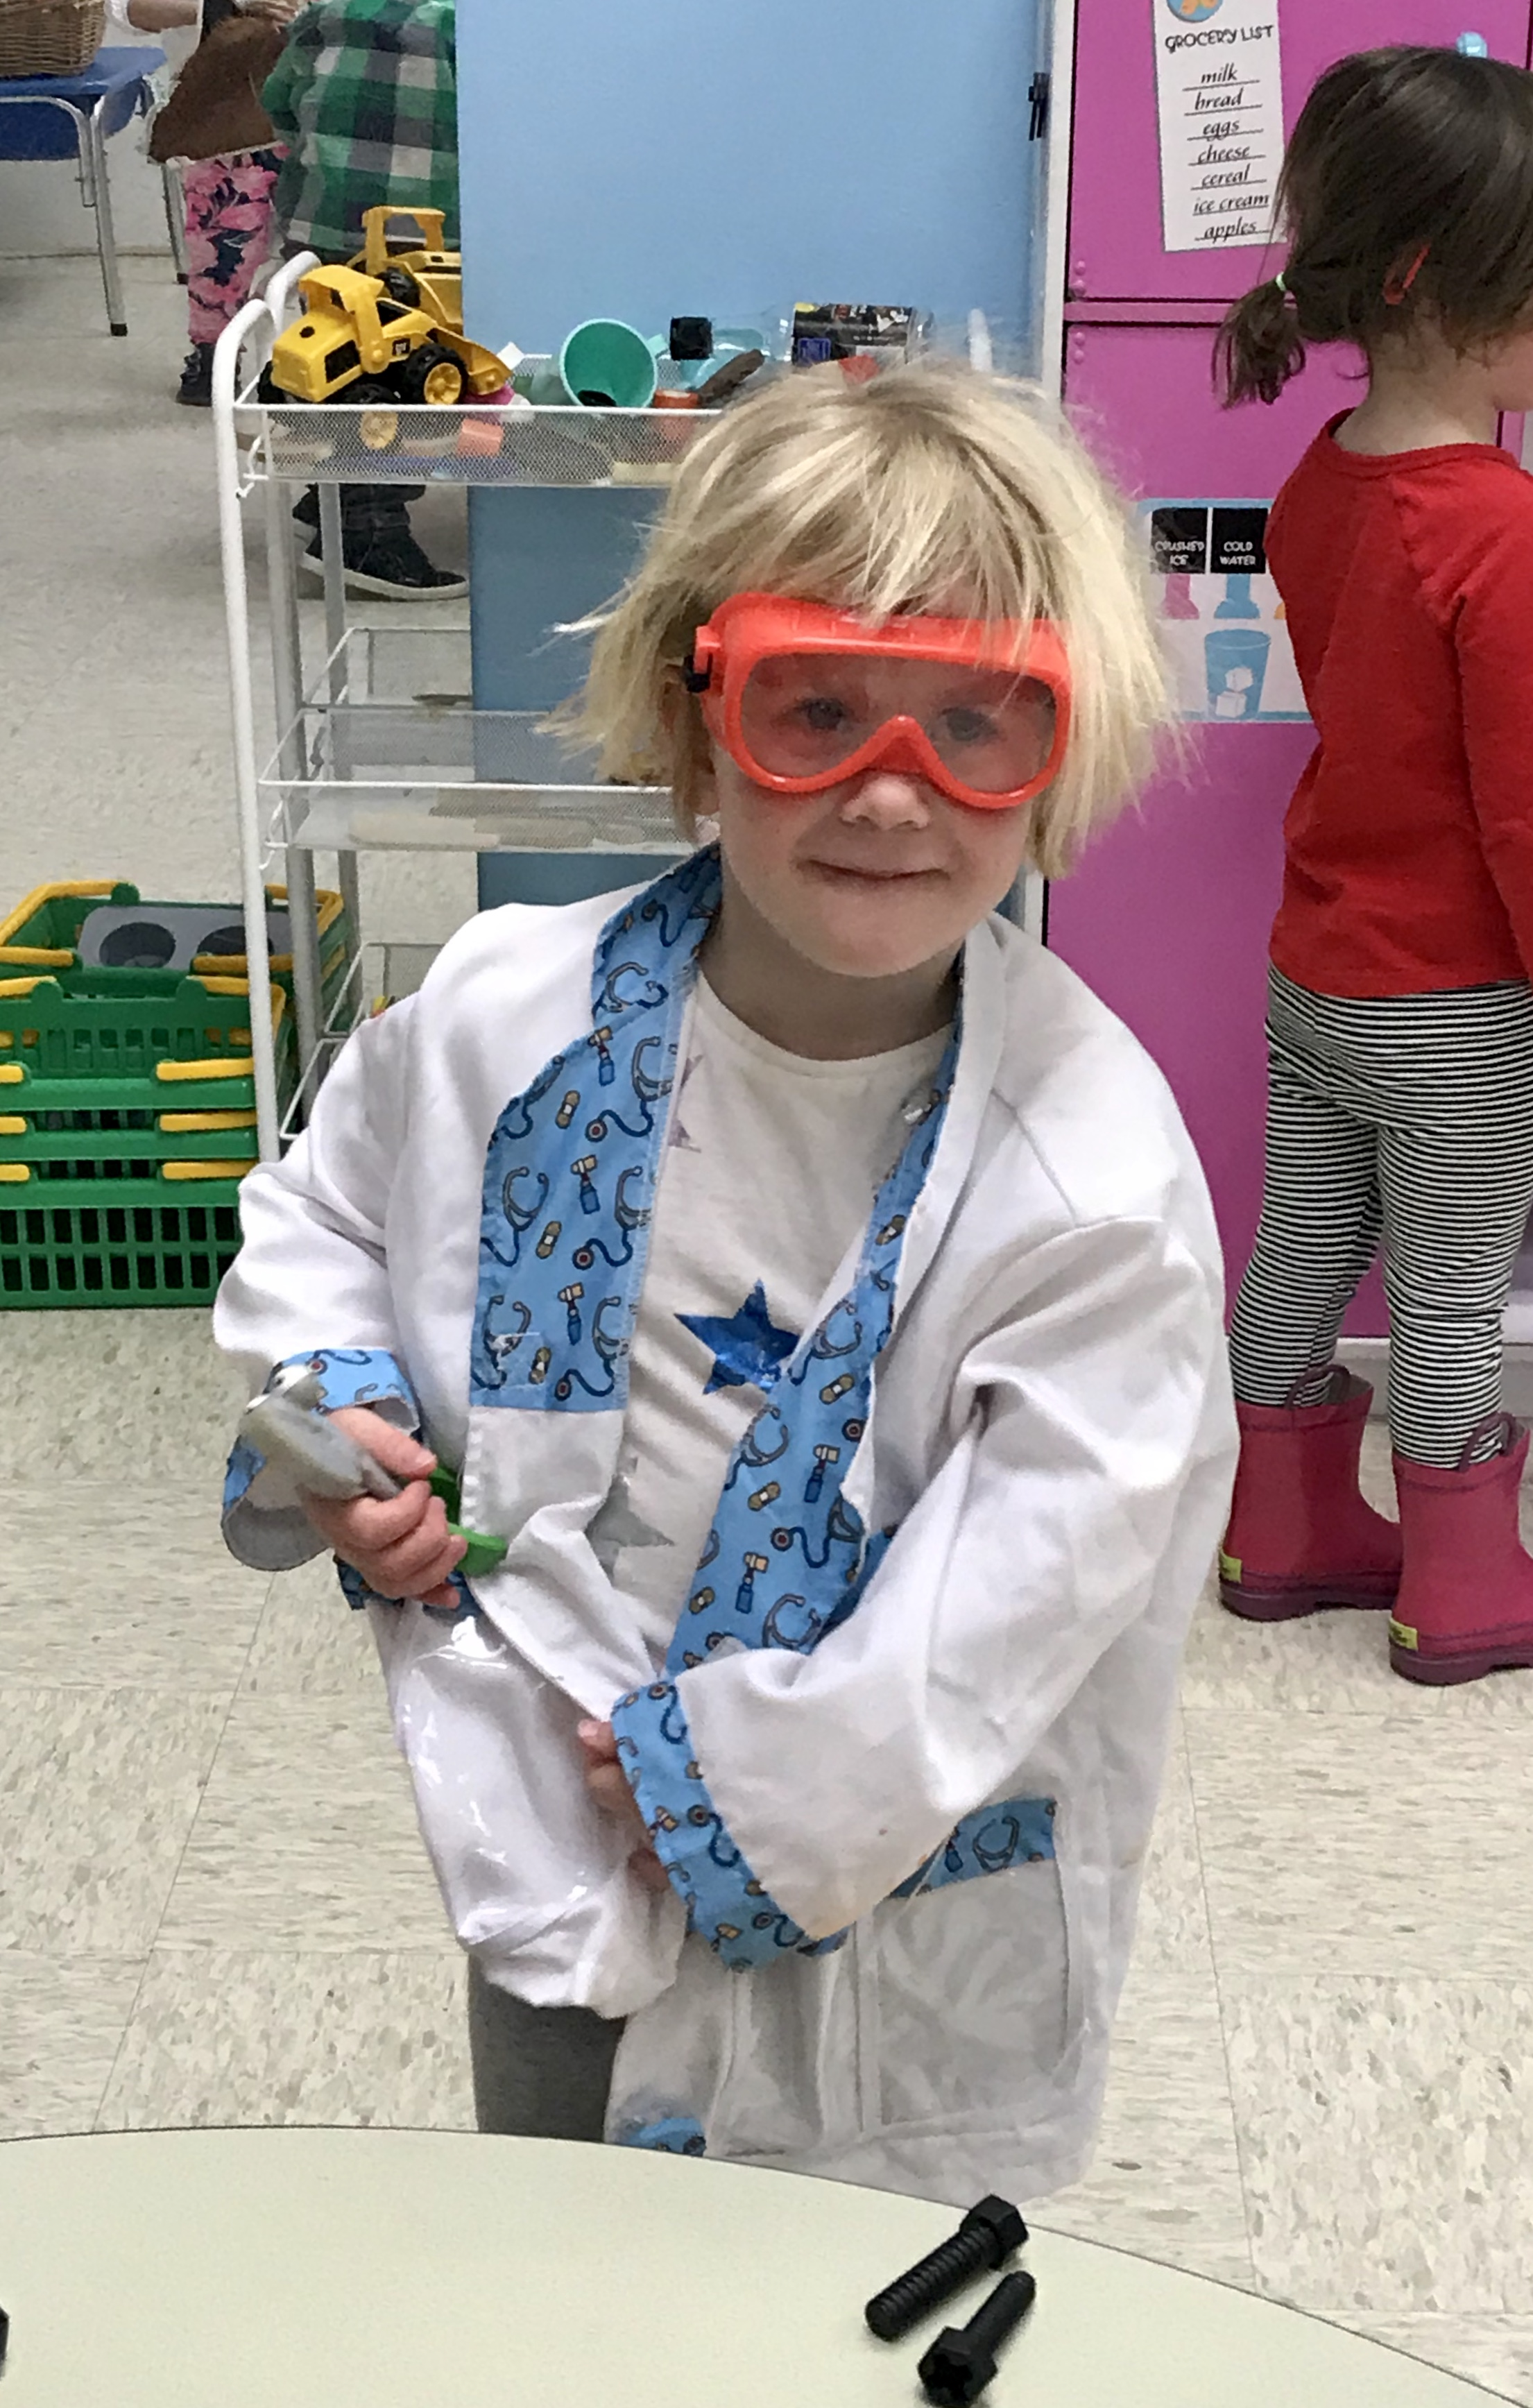 Coco working with the tools - safety glasses are important!